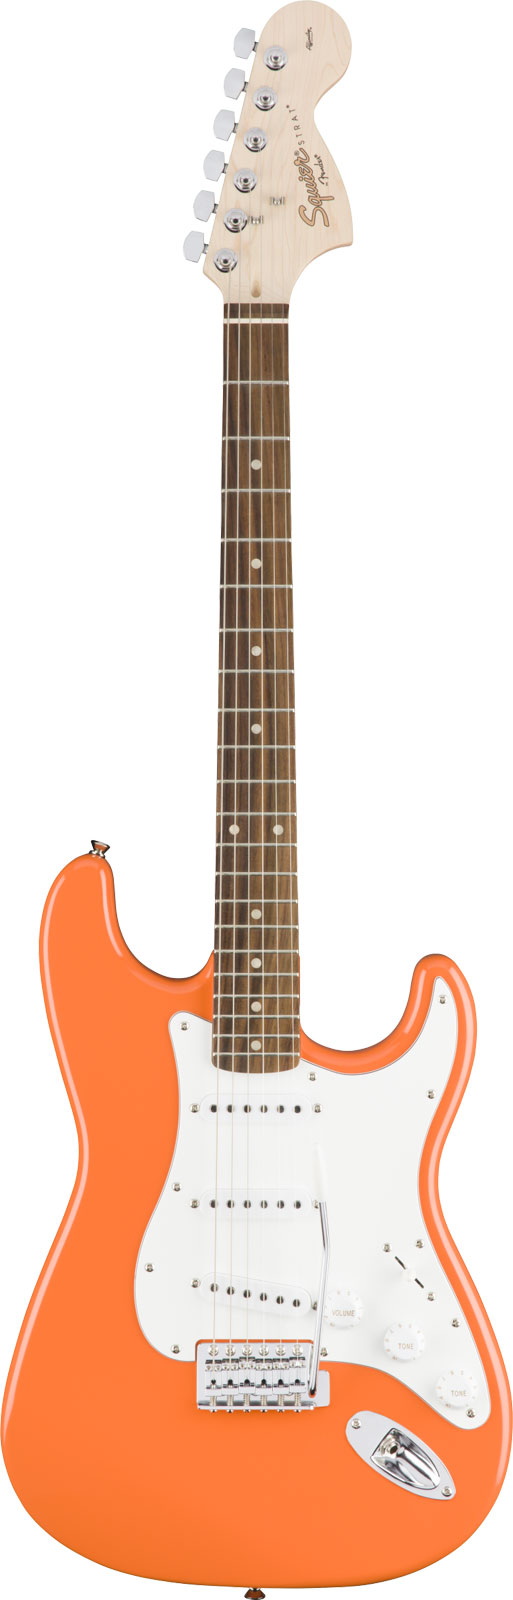 Squier By Fender Affinity Series Stratocaster Laurel Fingerboard Competition Orange